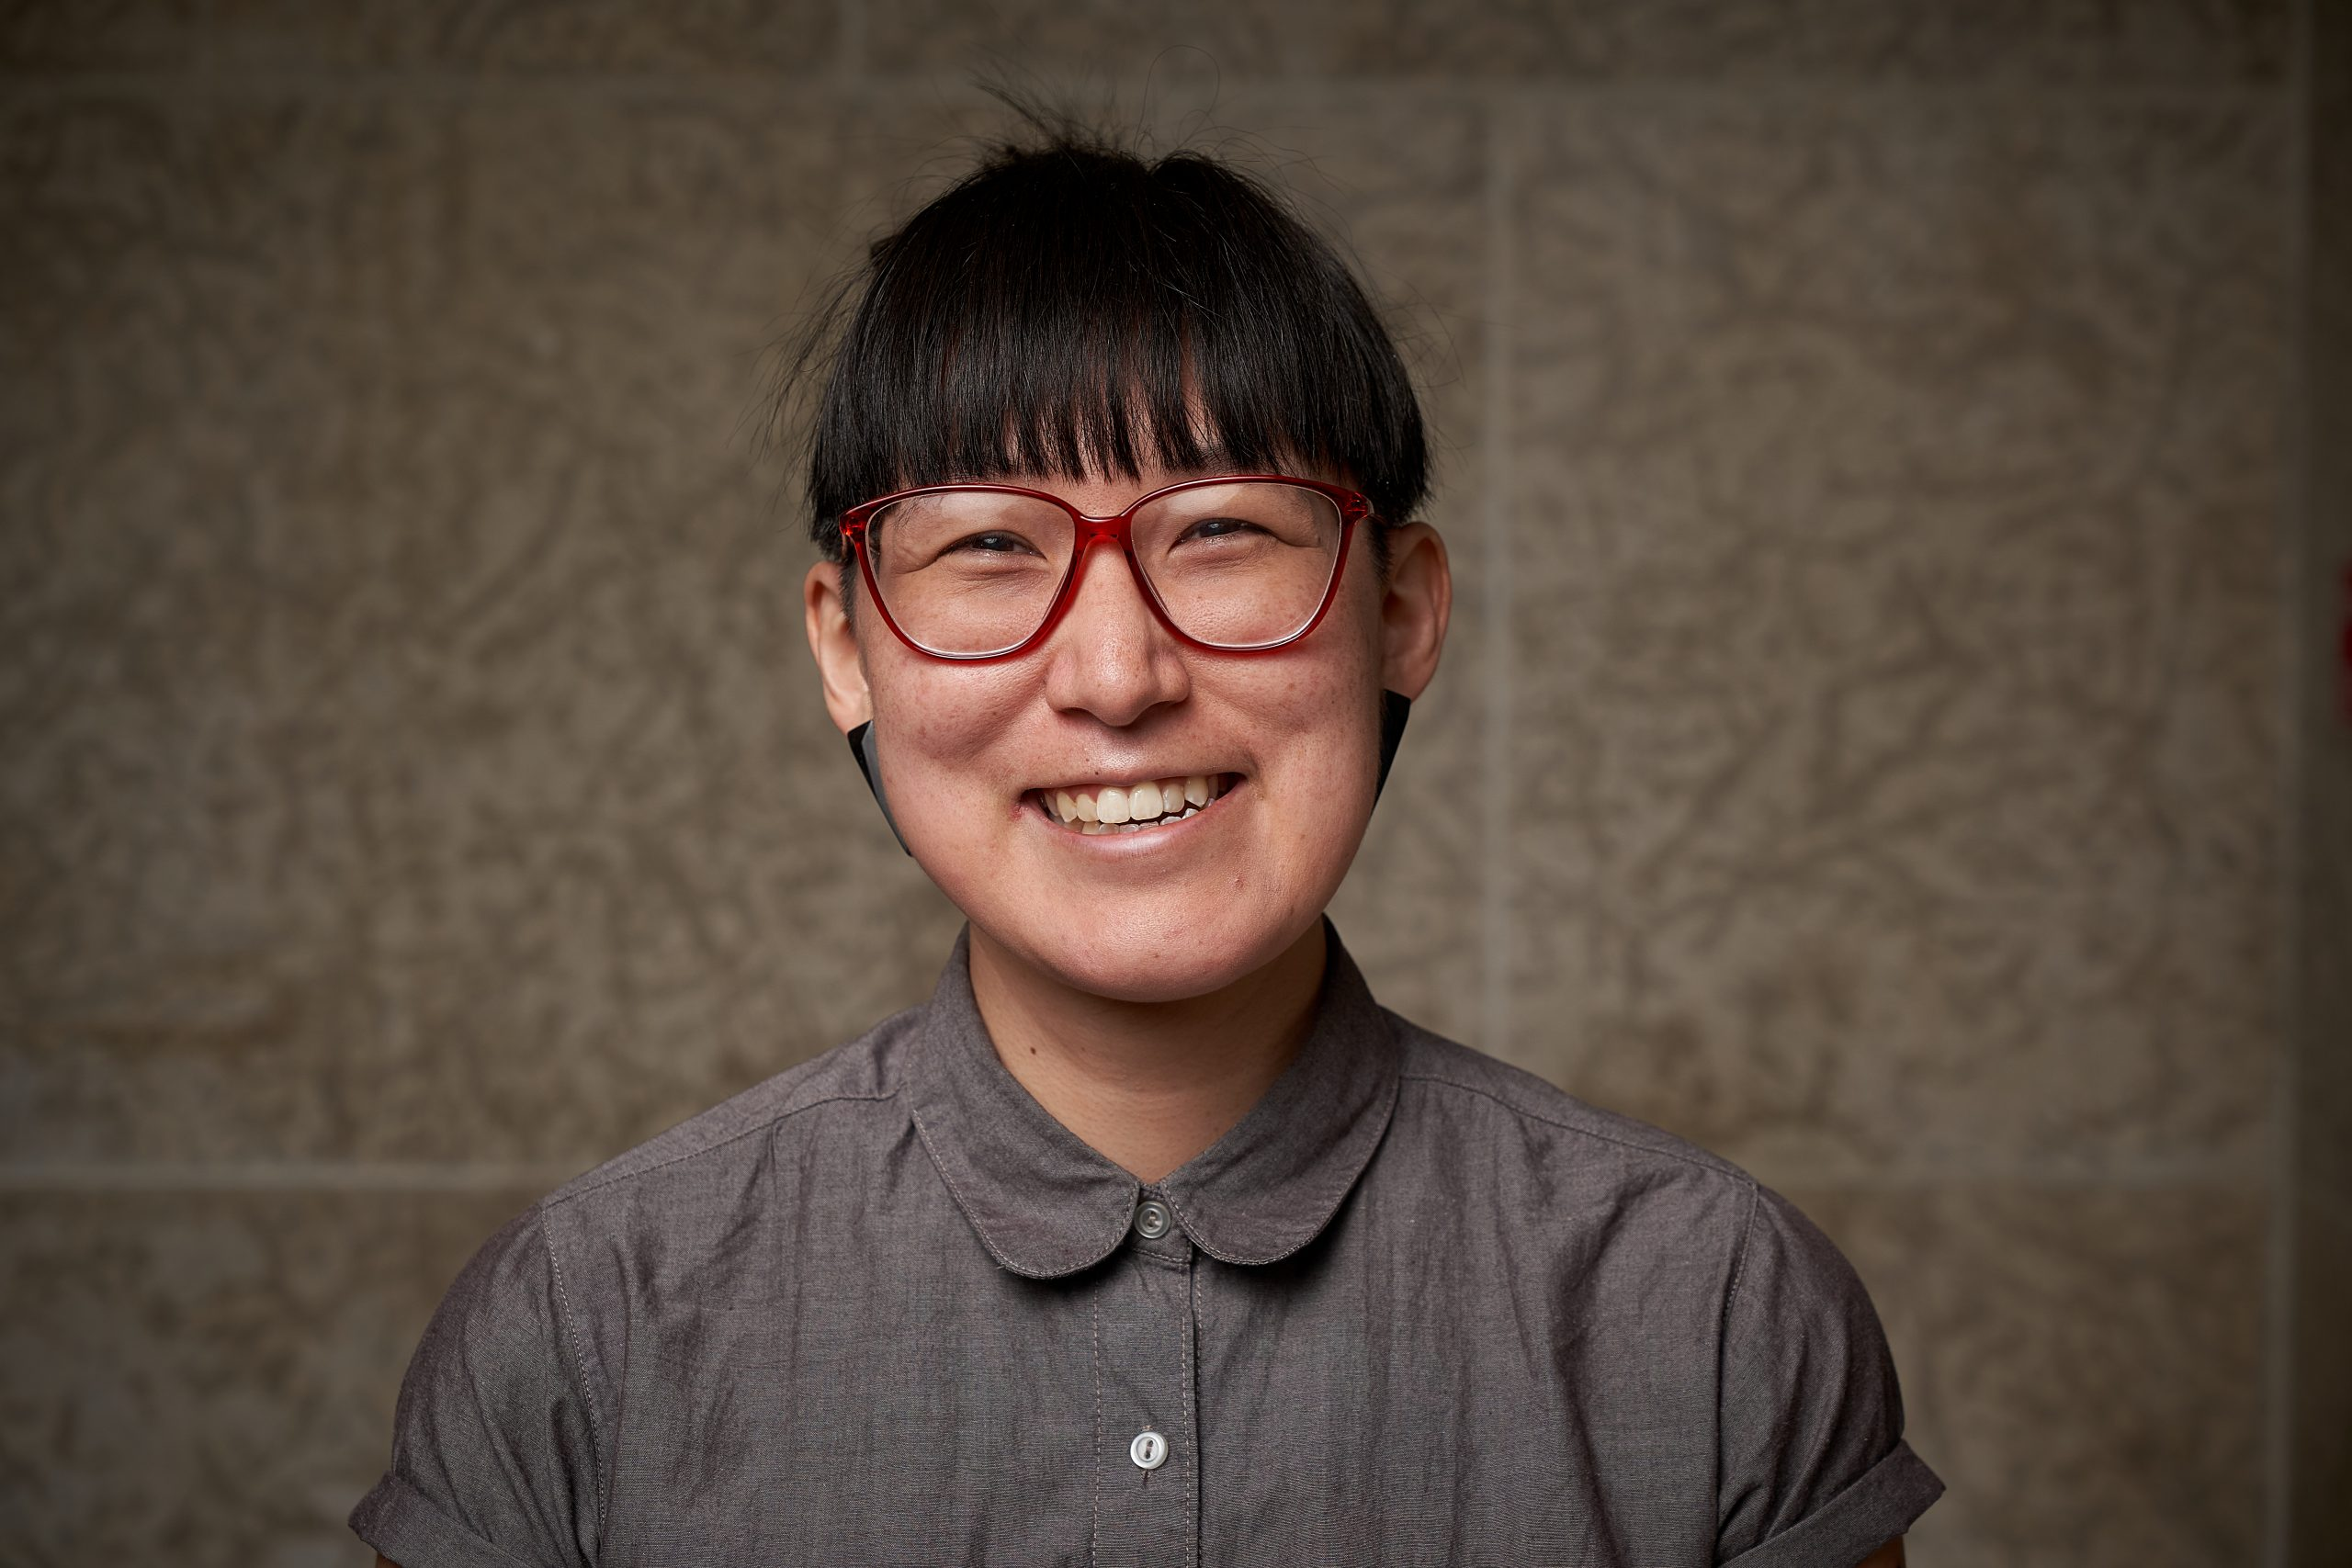 Jocelyn-Piirainen-WAG-Assistant-Curator-of-Inuit-Art-Photo-by-Ian-McCausland-scaled